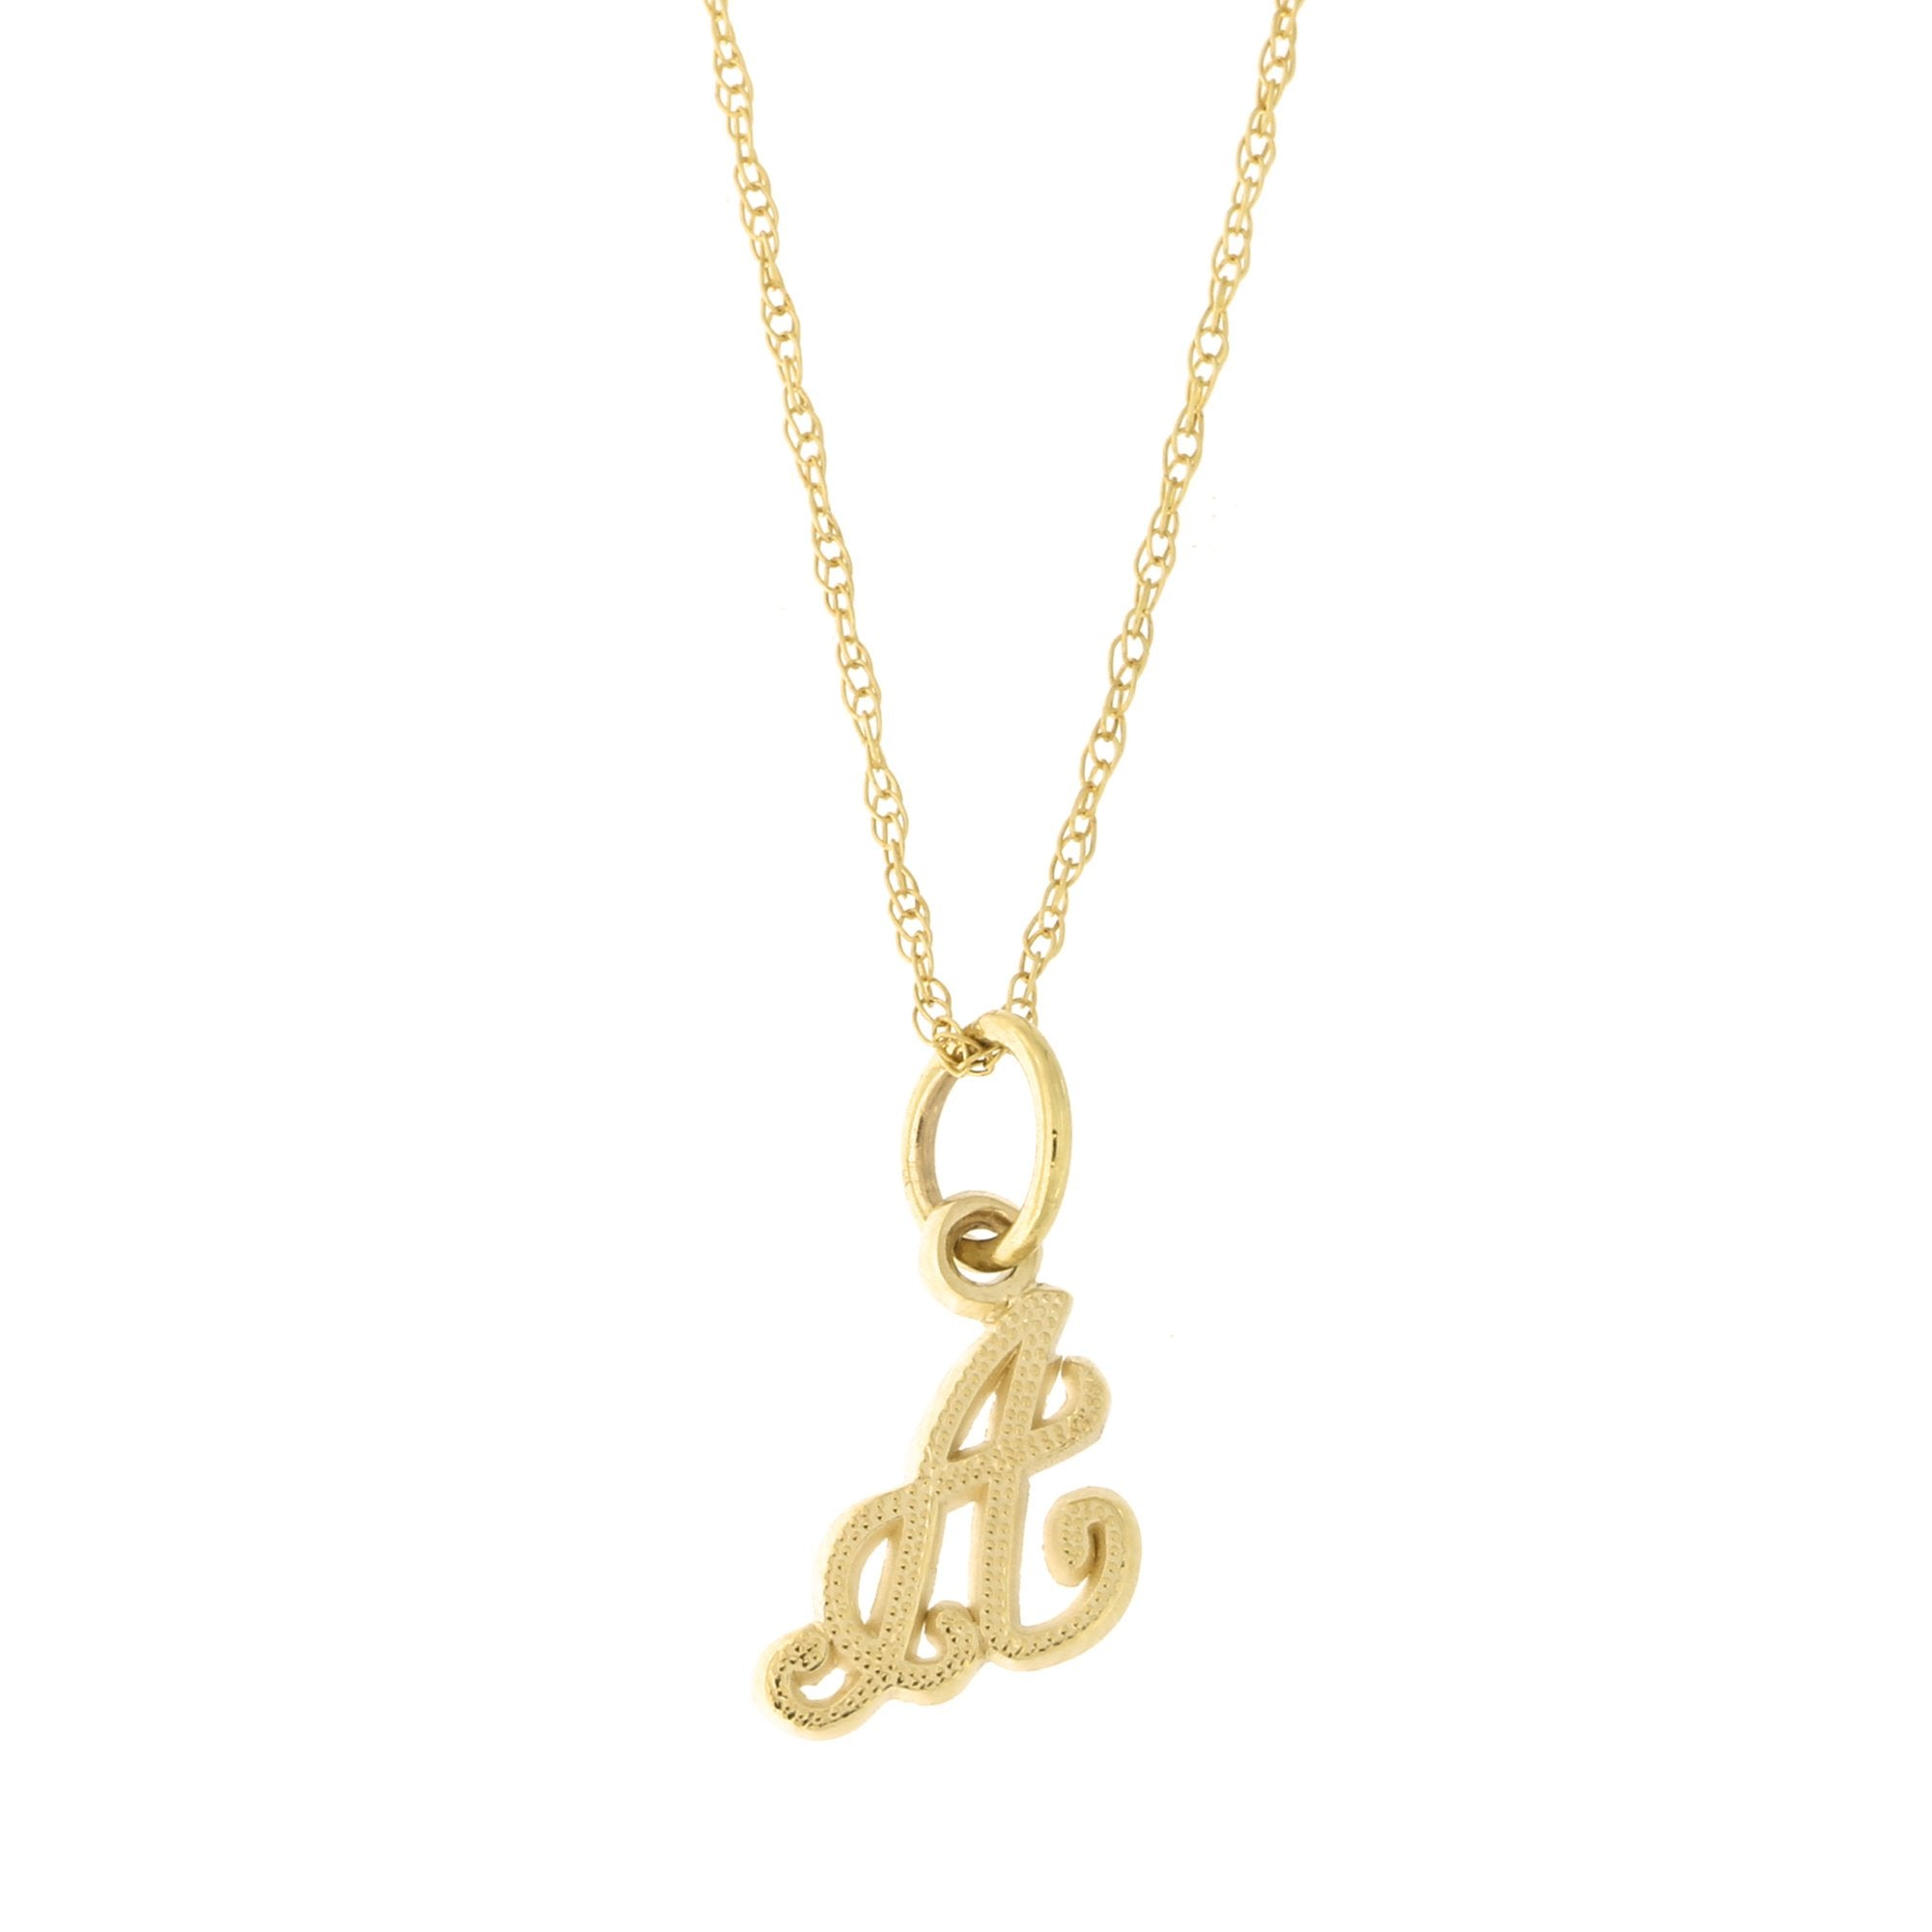 10k yellow gold small initial pendant necklace j 16 inches beauniq 10k yellow gold small initial pendant necklace j 16 inches aloadofball Gallery